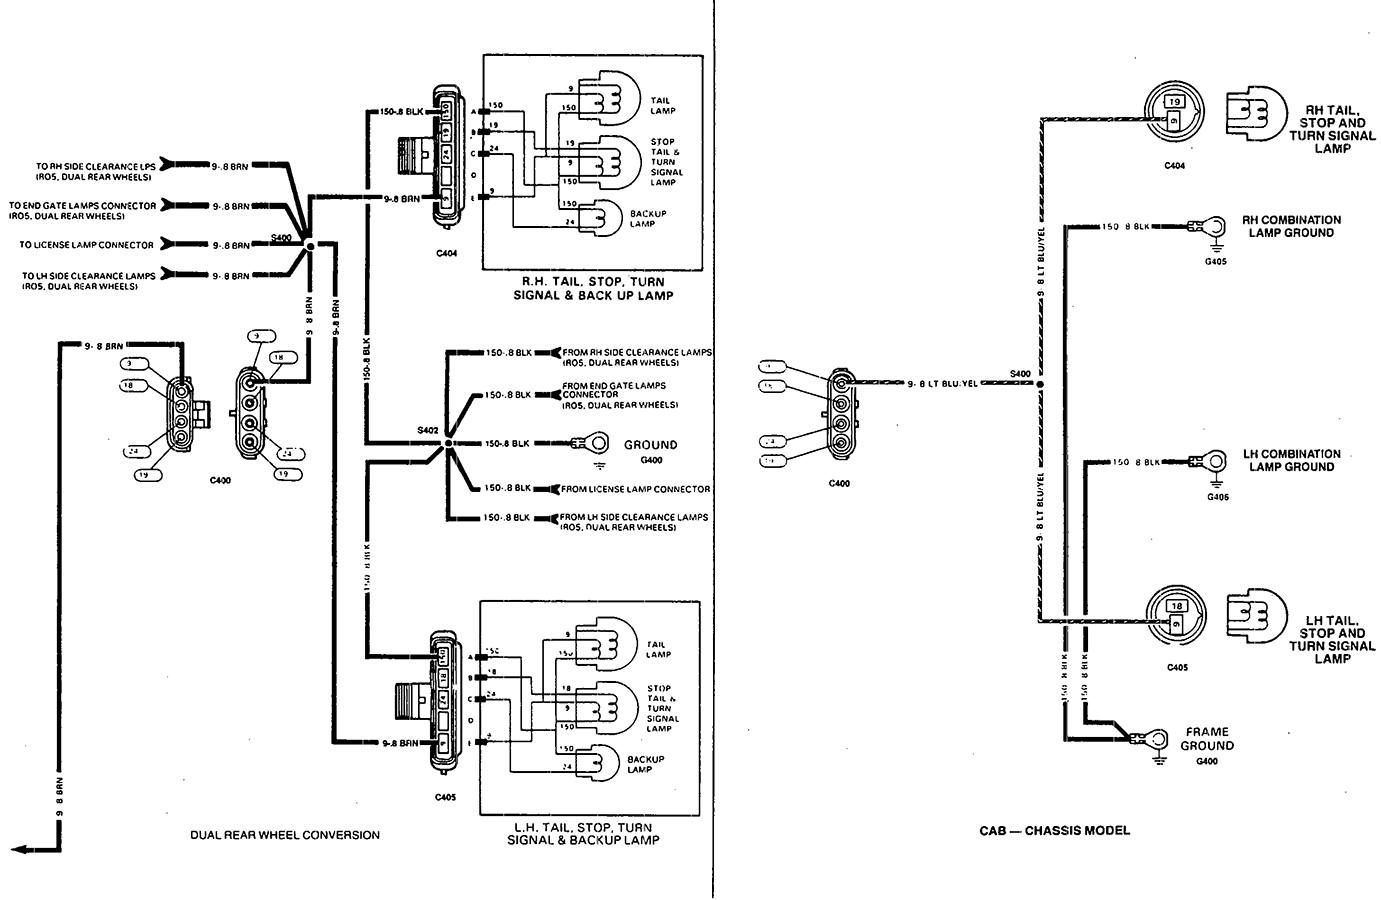 Trailer Light Wiring Harness Diagram - Wiring Diagrams Hubs - 4 Wire Trailer Wiring Diagram